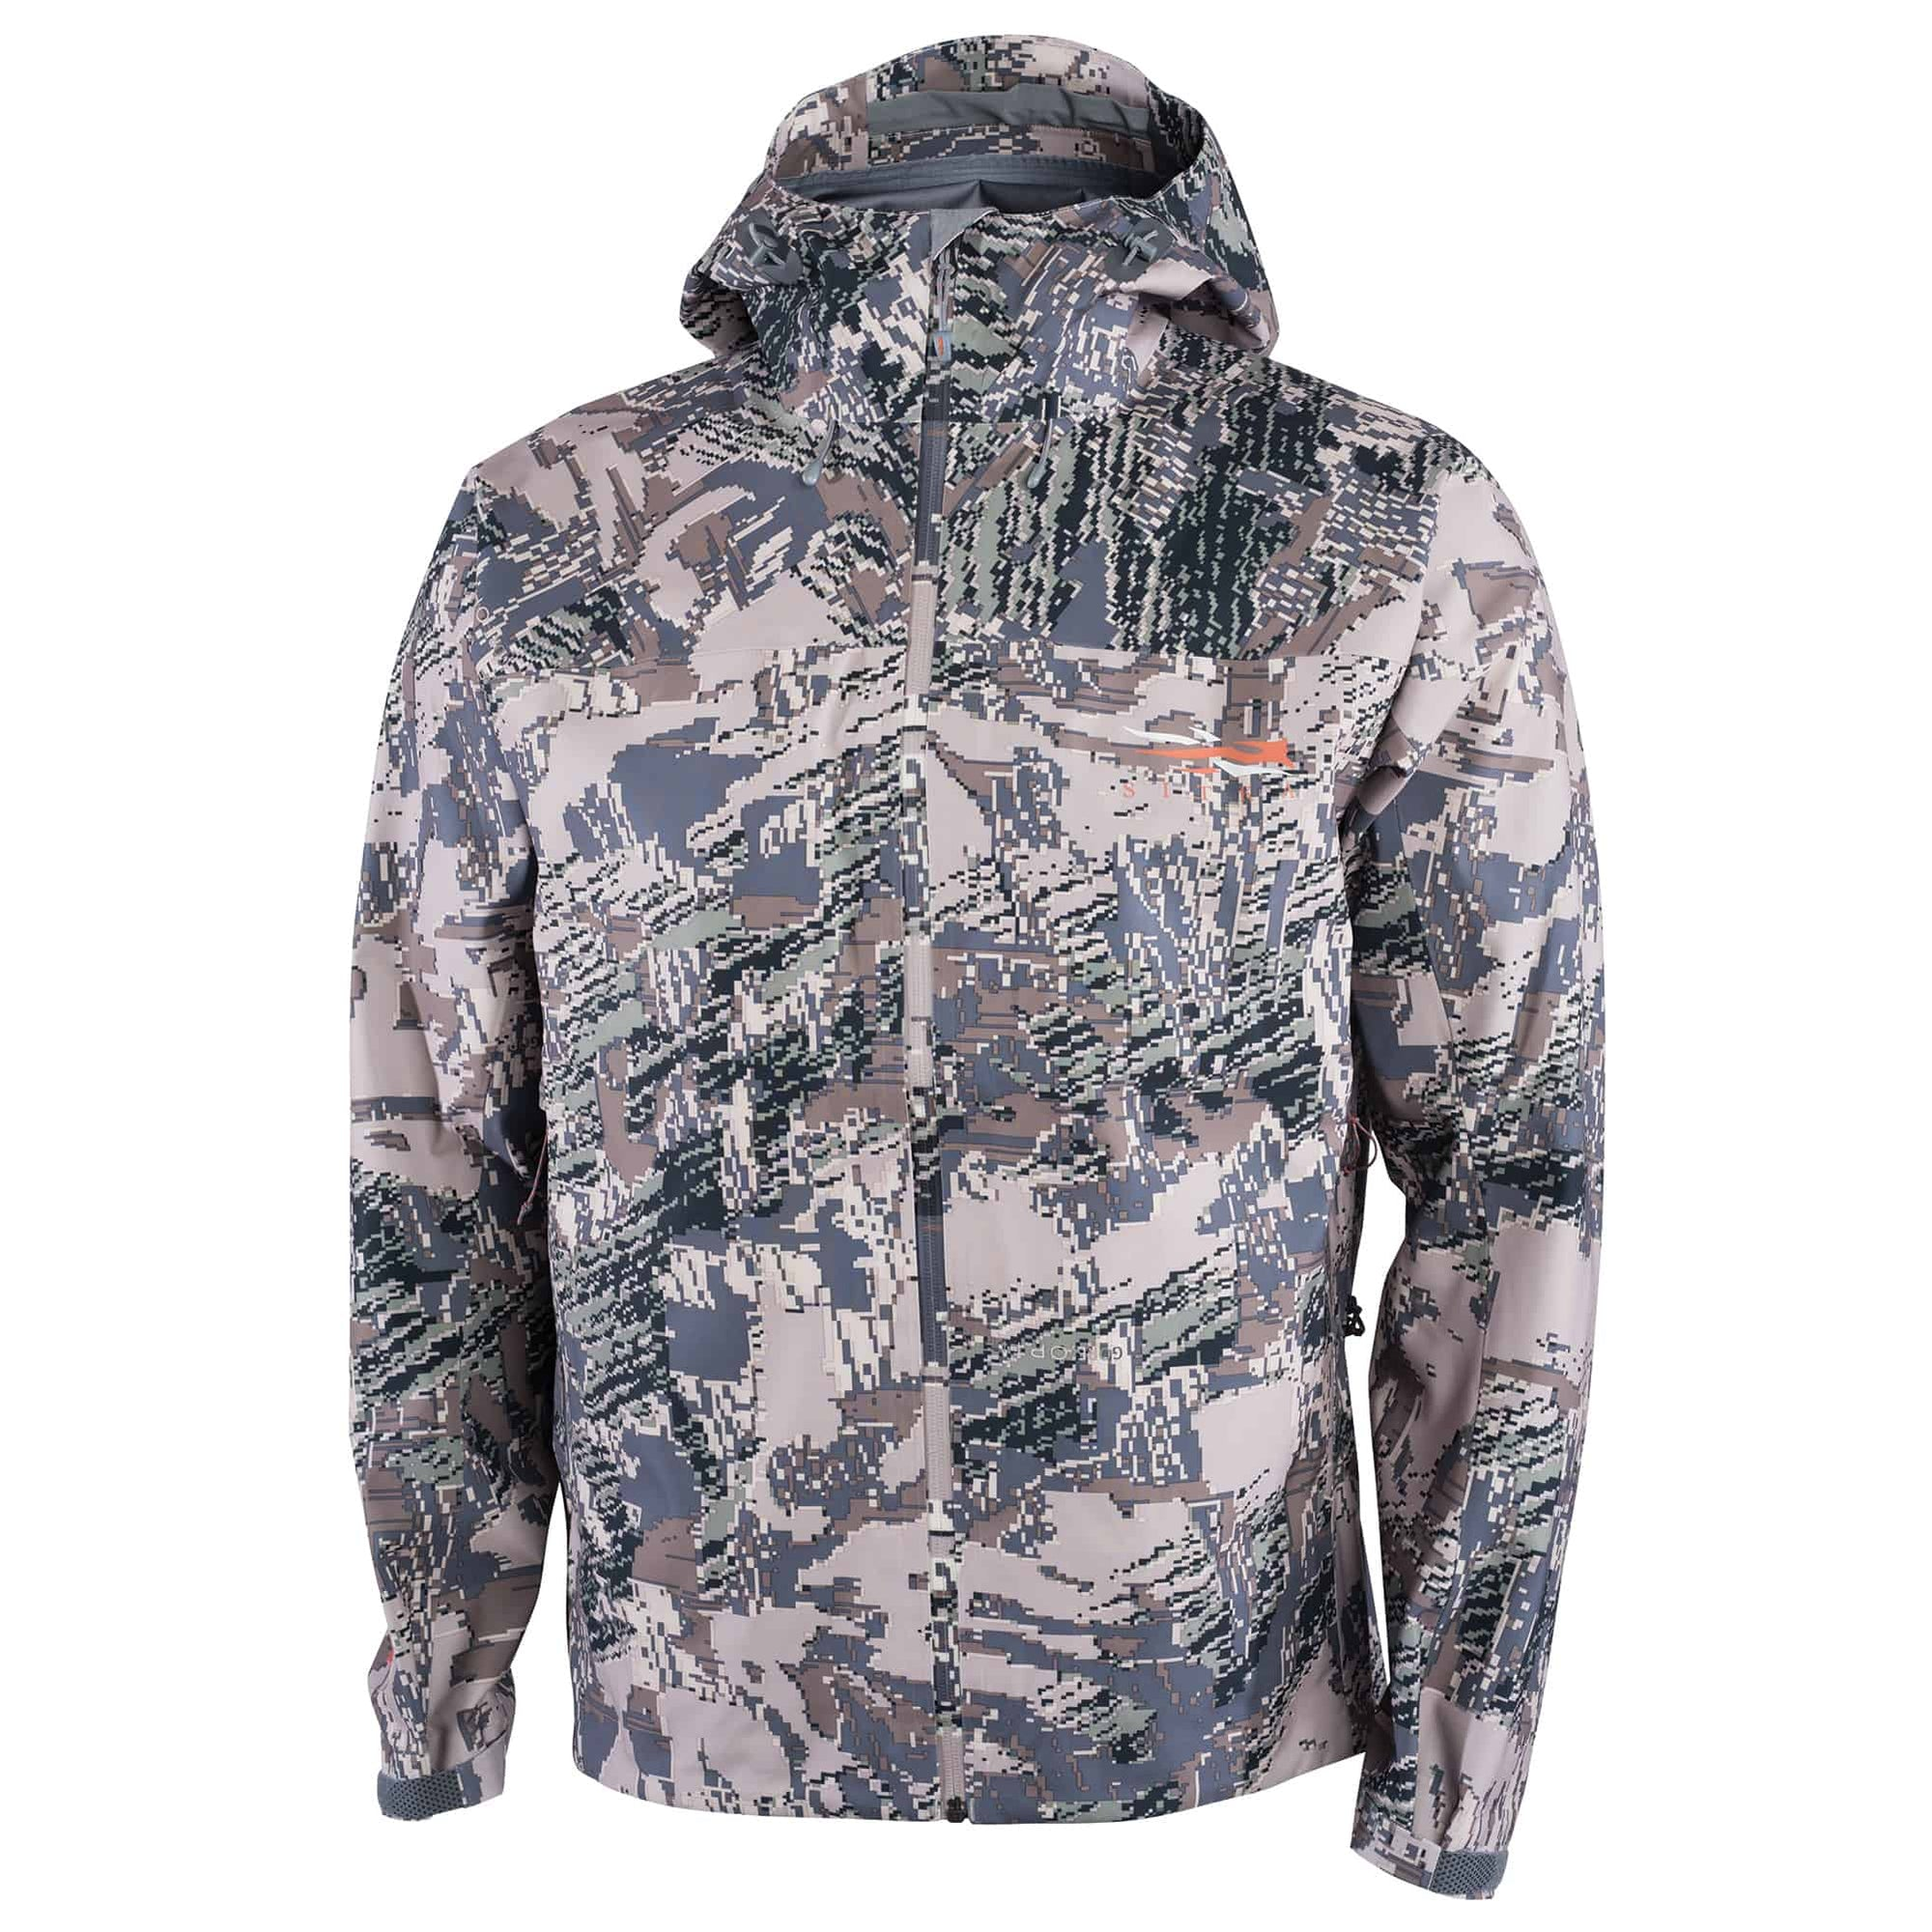 SITKA Gear Cloudburst Rain Jacket Optifade Open Country